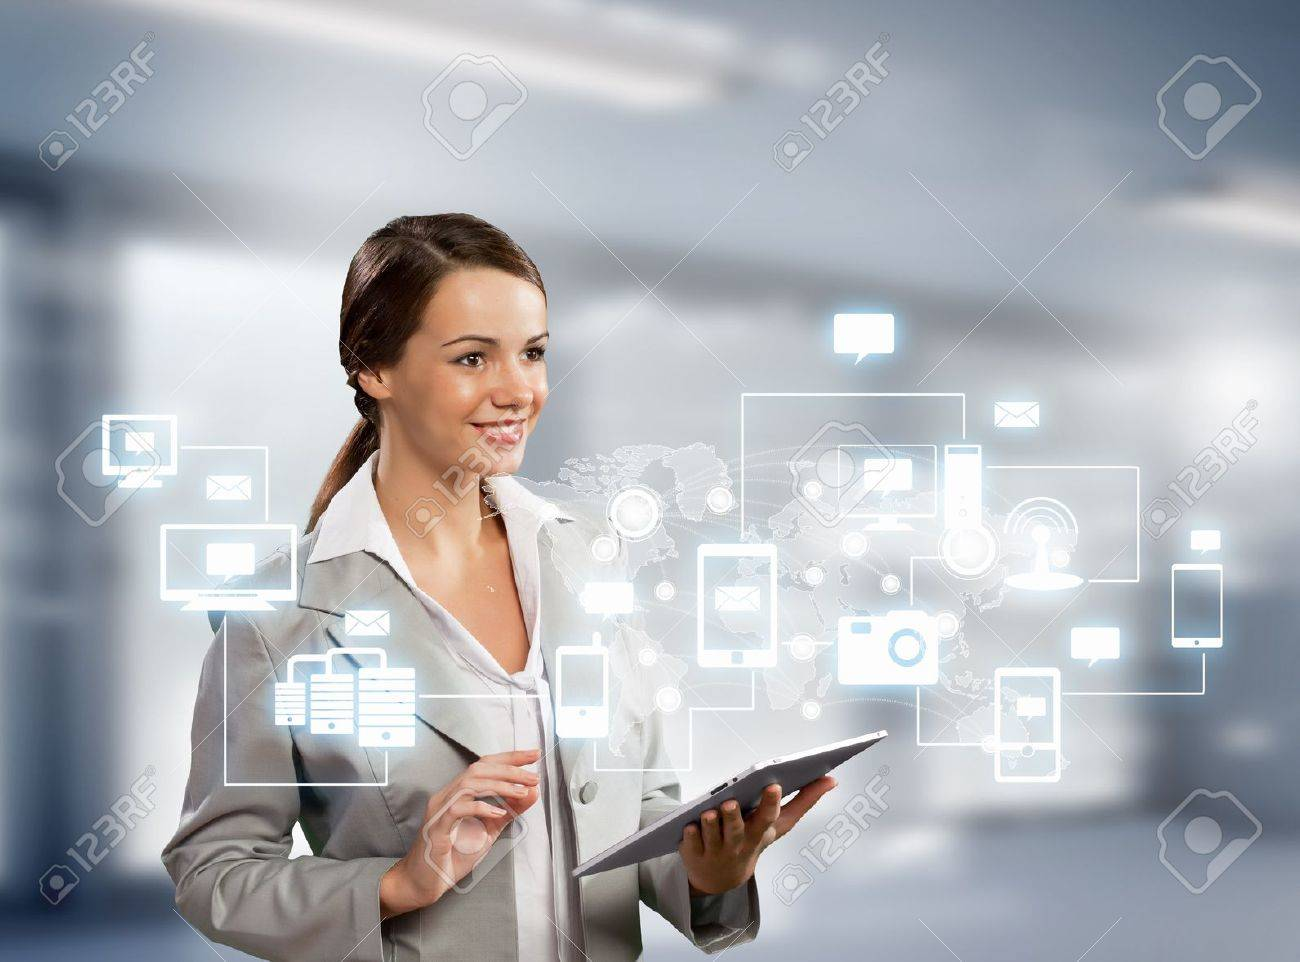 Image of businesswoman with tablet pc against high-tech background Stock Photo - 20327170